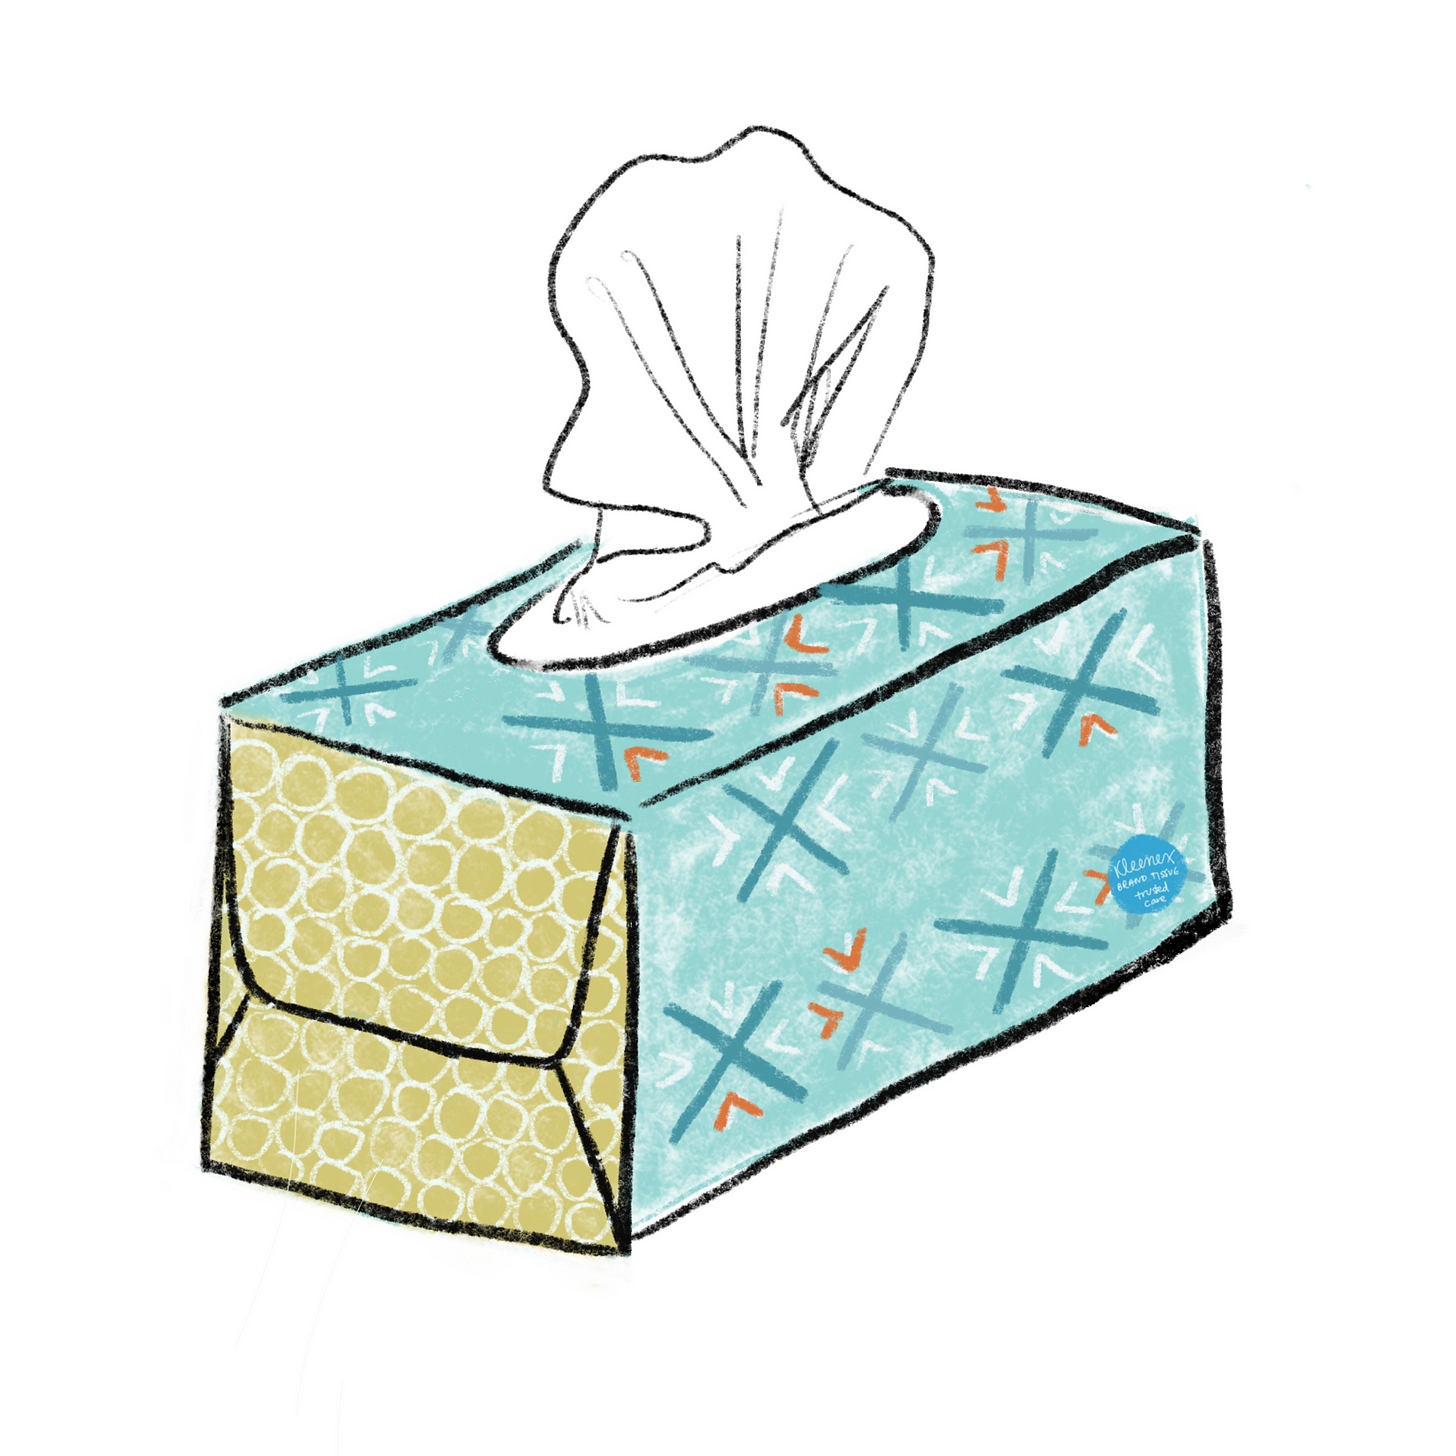 Illustration of a box of Kleenex tissues